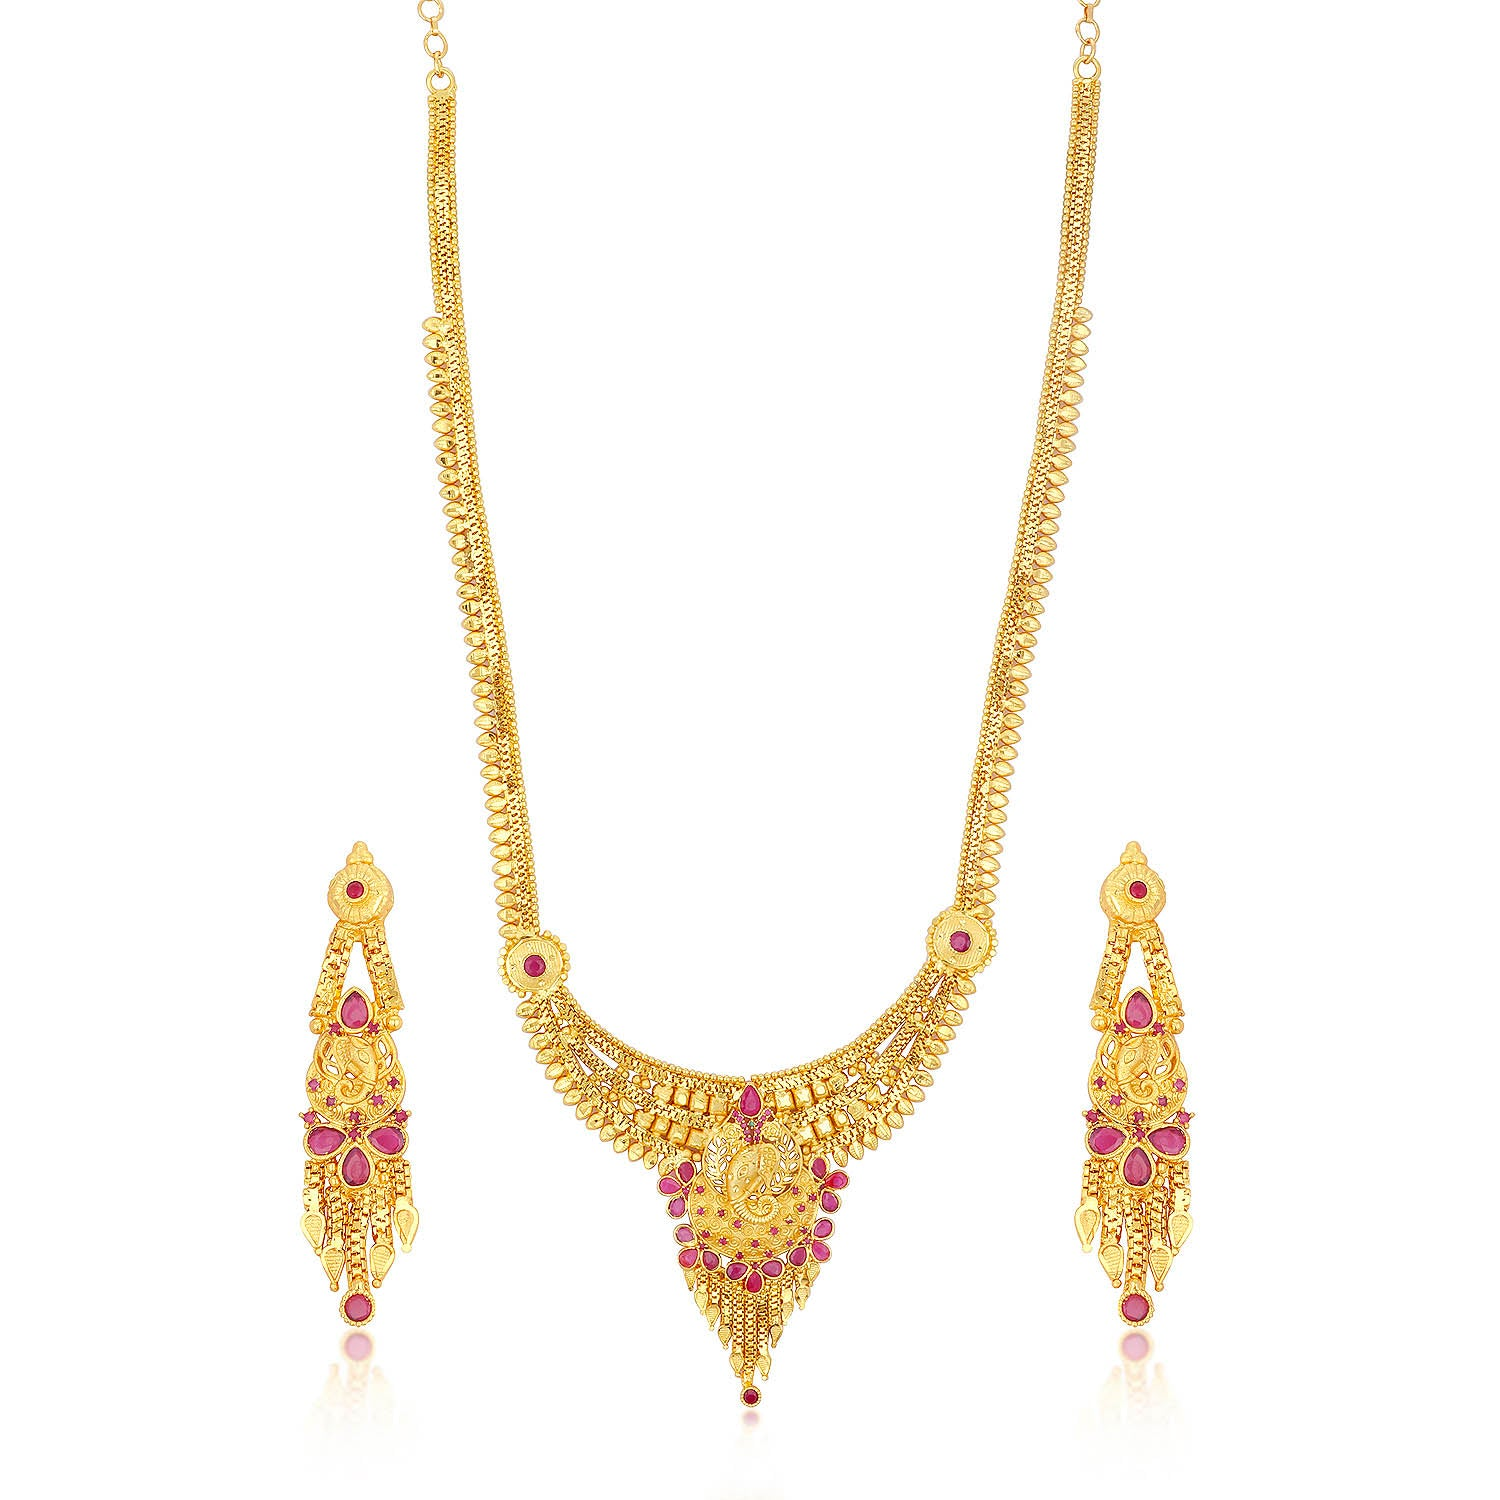 Sukkhi Modern 24 Carat 1 Gram Gold Jewellery Long Haram Necklace